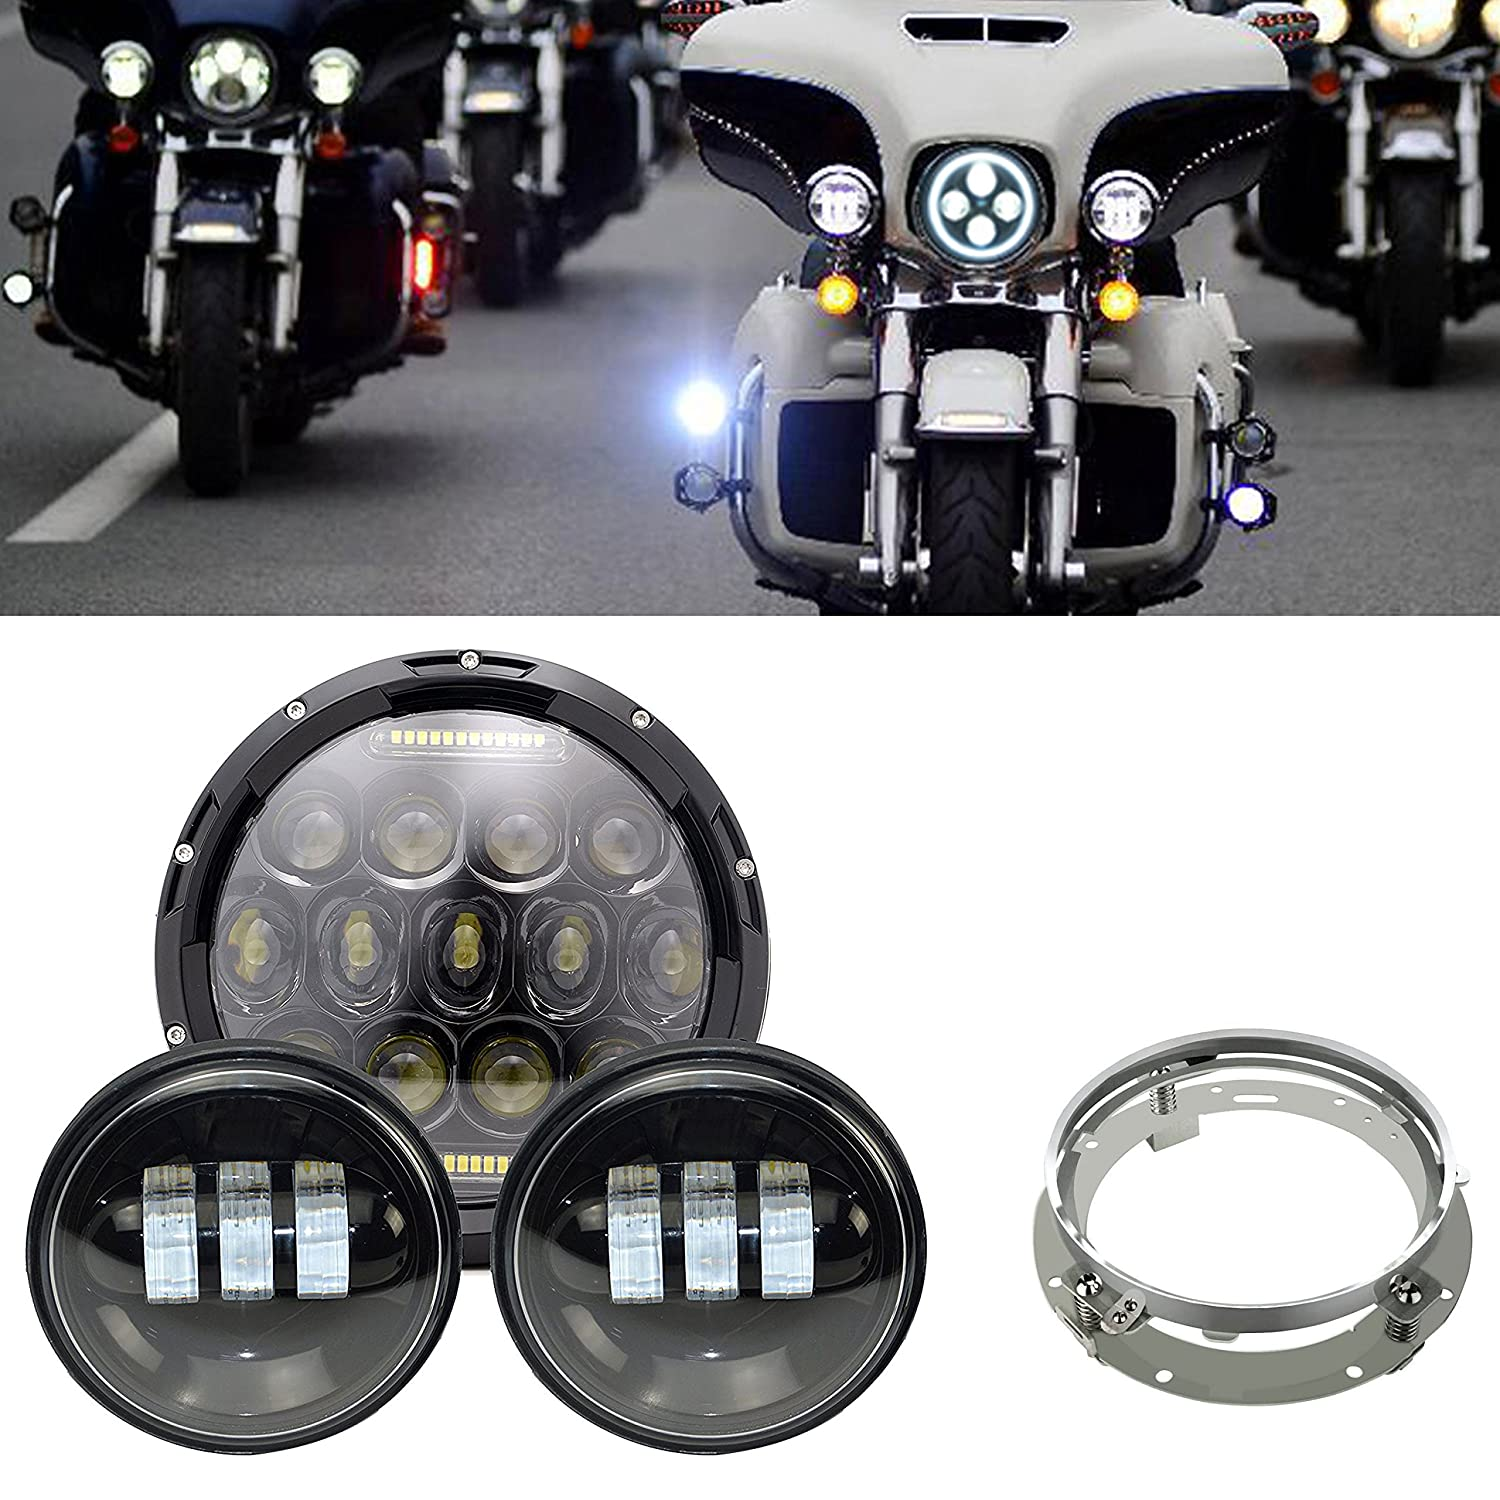 Daymaker Replace 7inch Led Headlight Motorcycle Harley Davidson Road